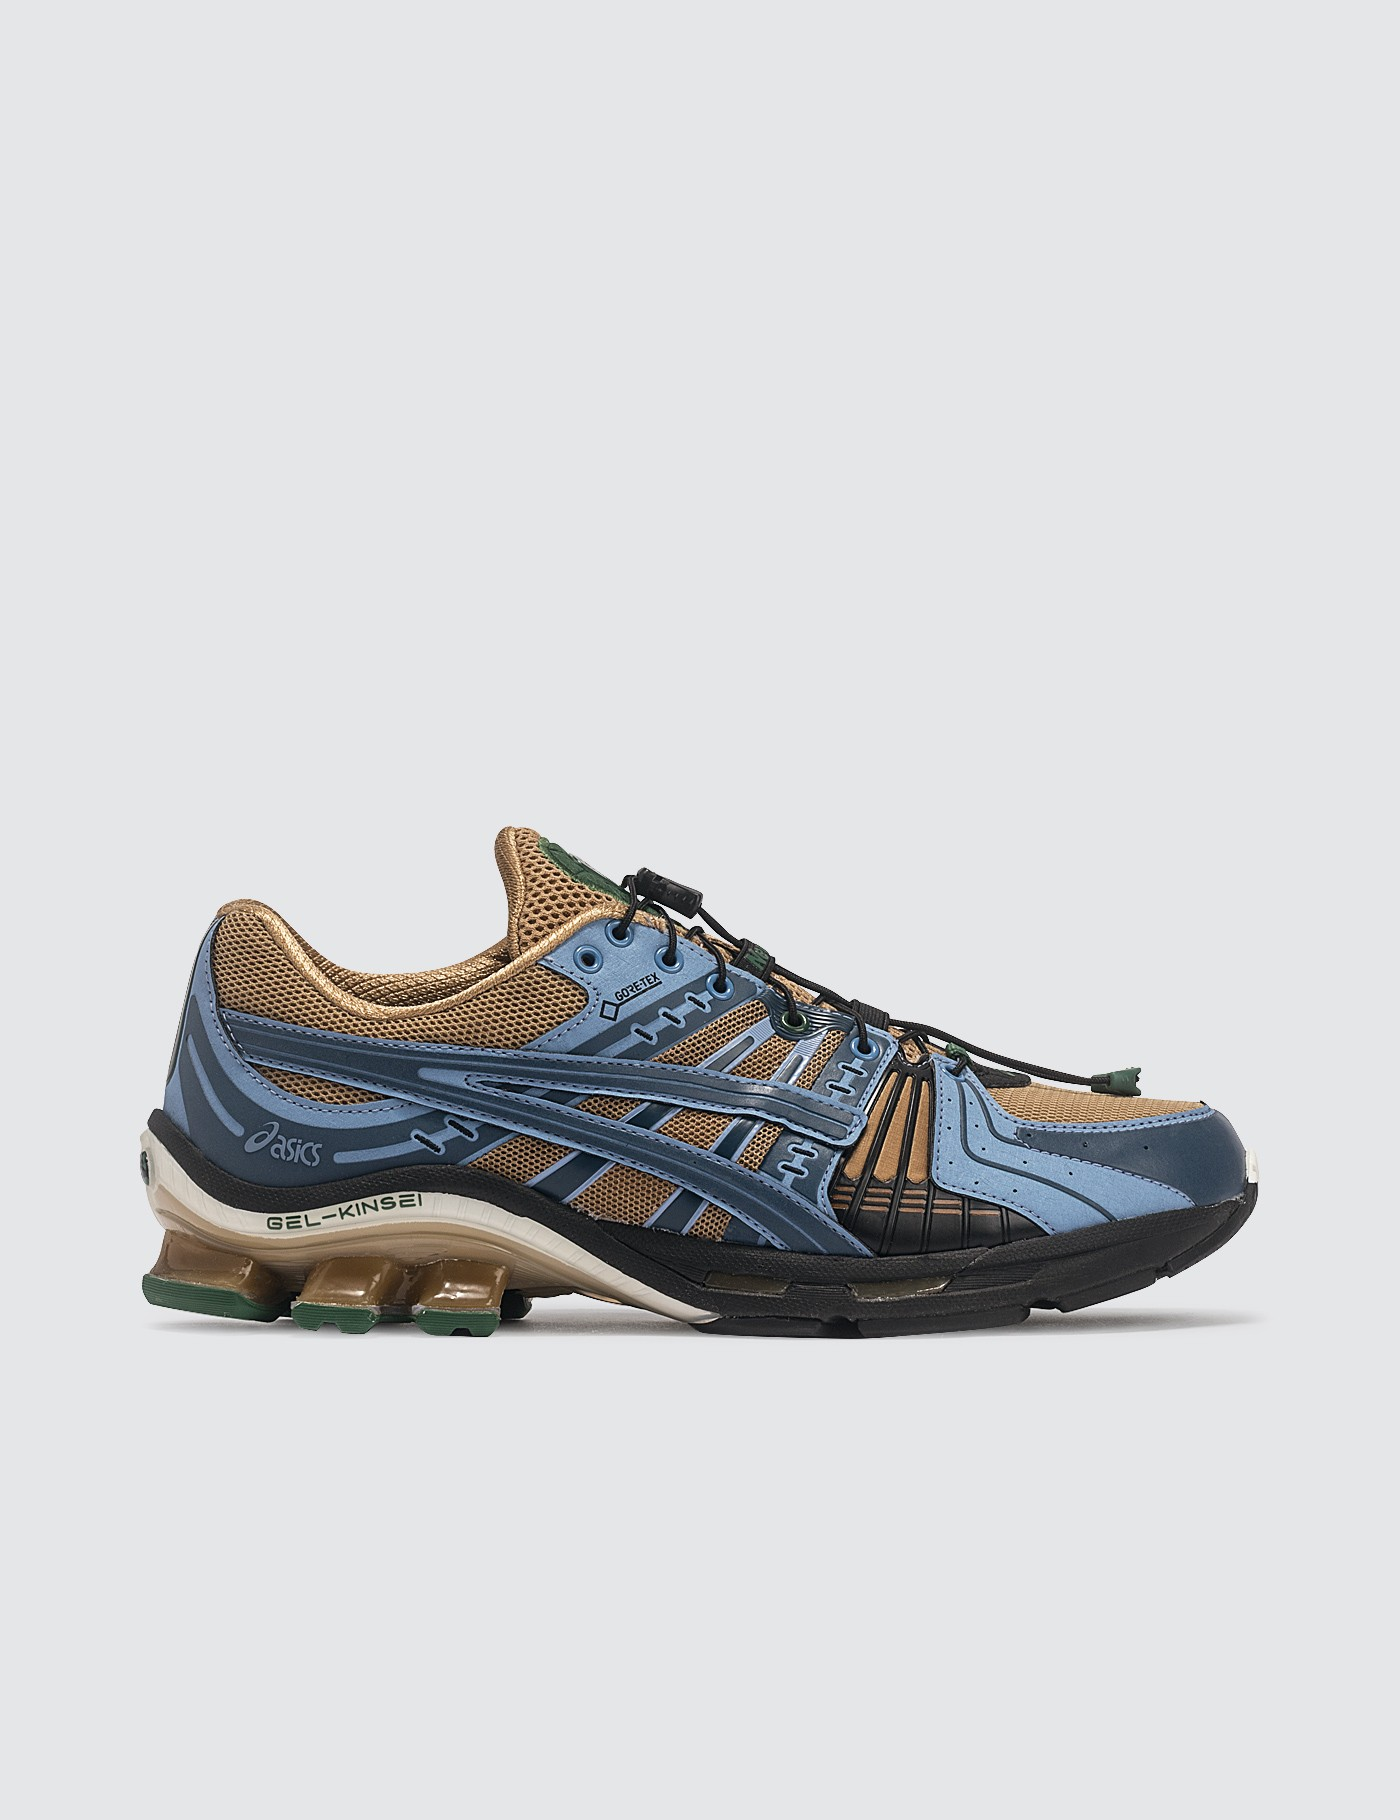 100% top quality exclusive shoes delicate colors x Affix Gel-Kinsei OG Gore-Tex, ASICS